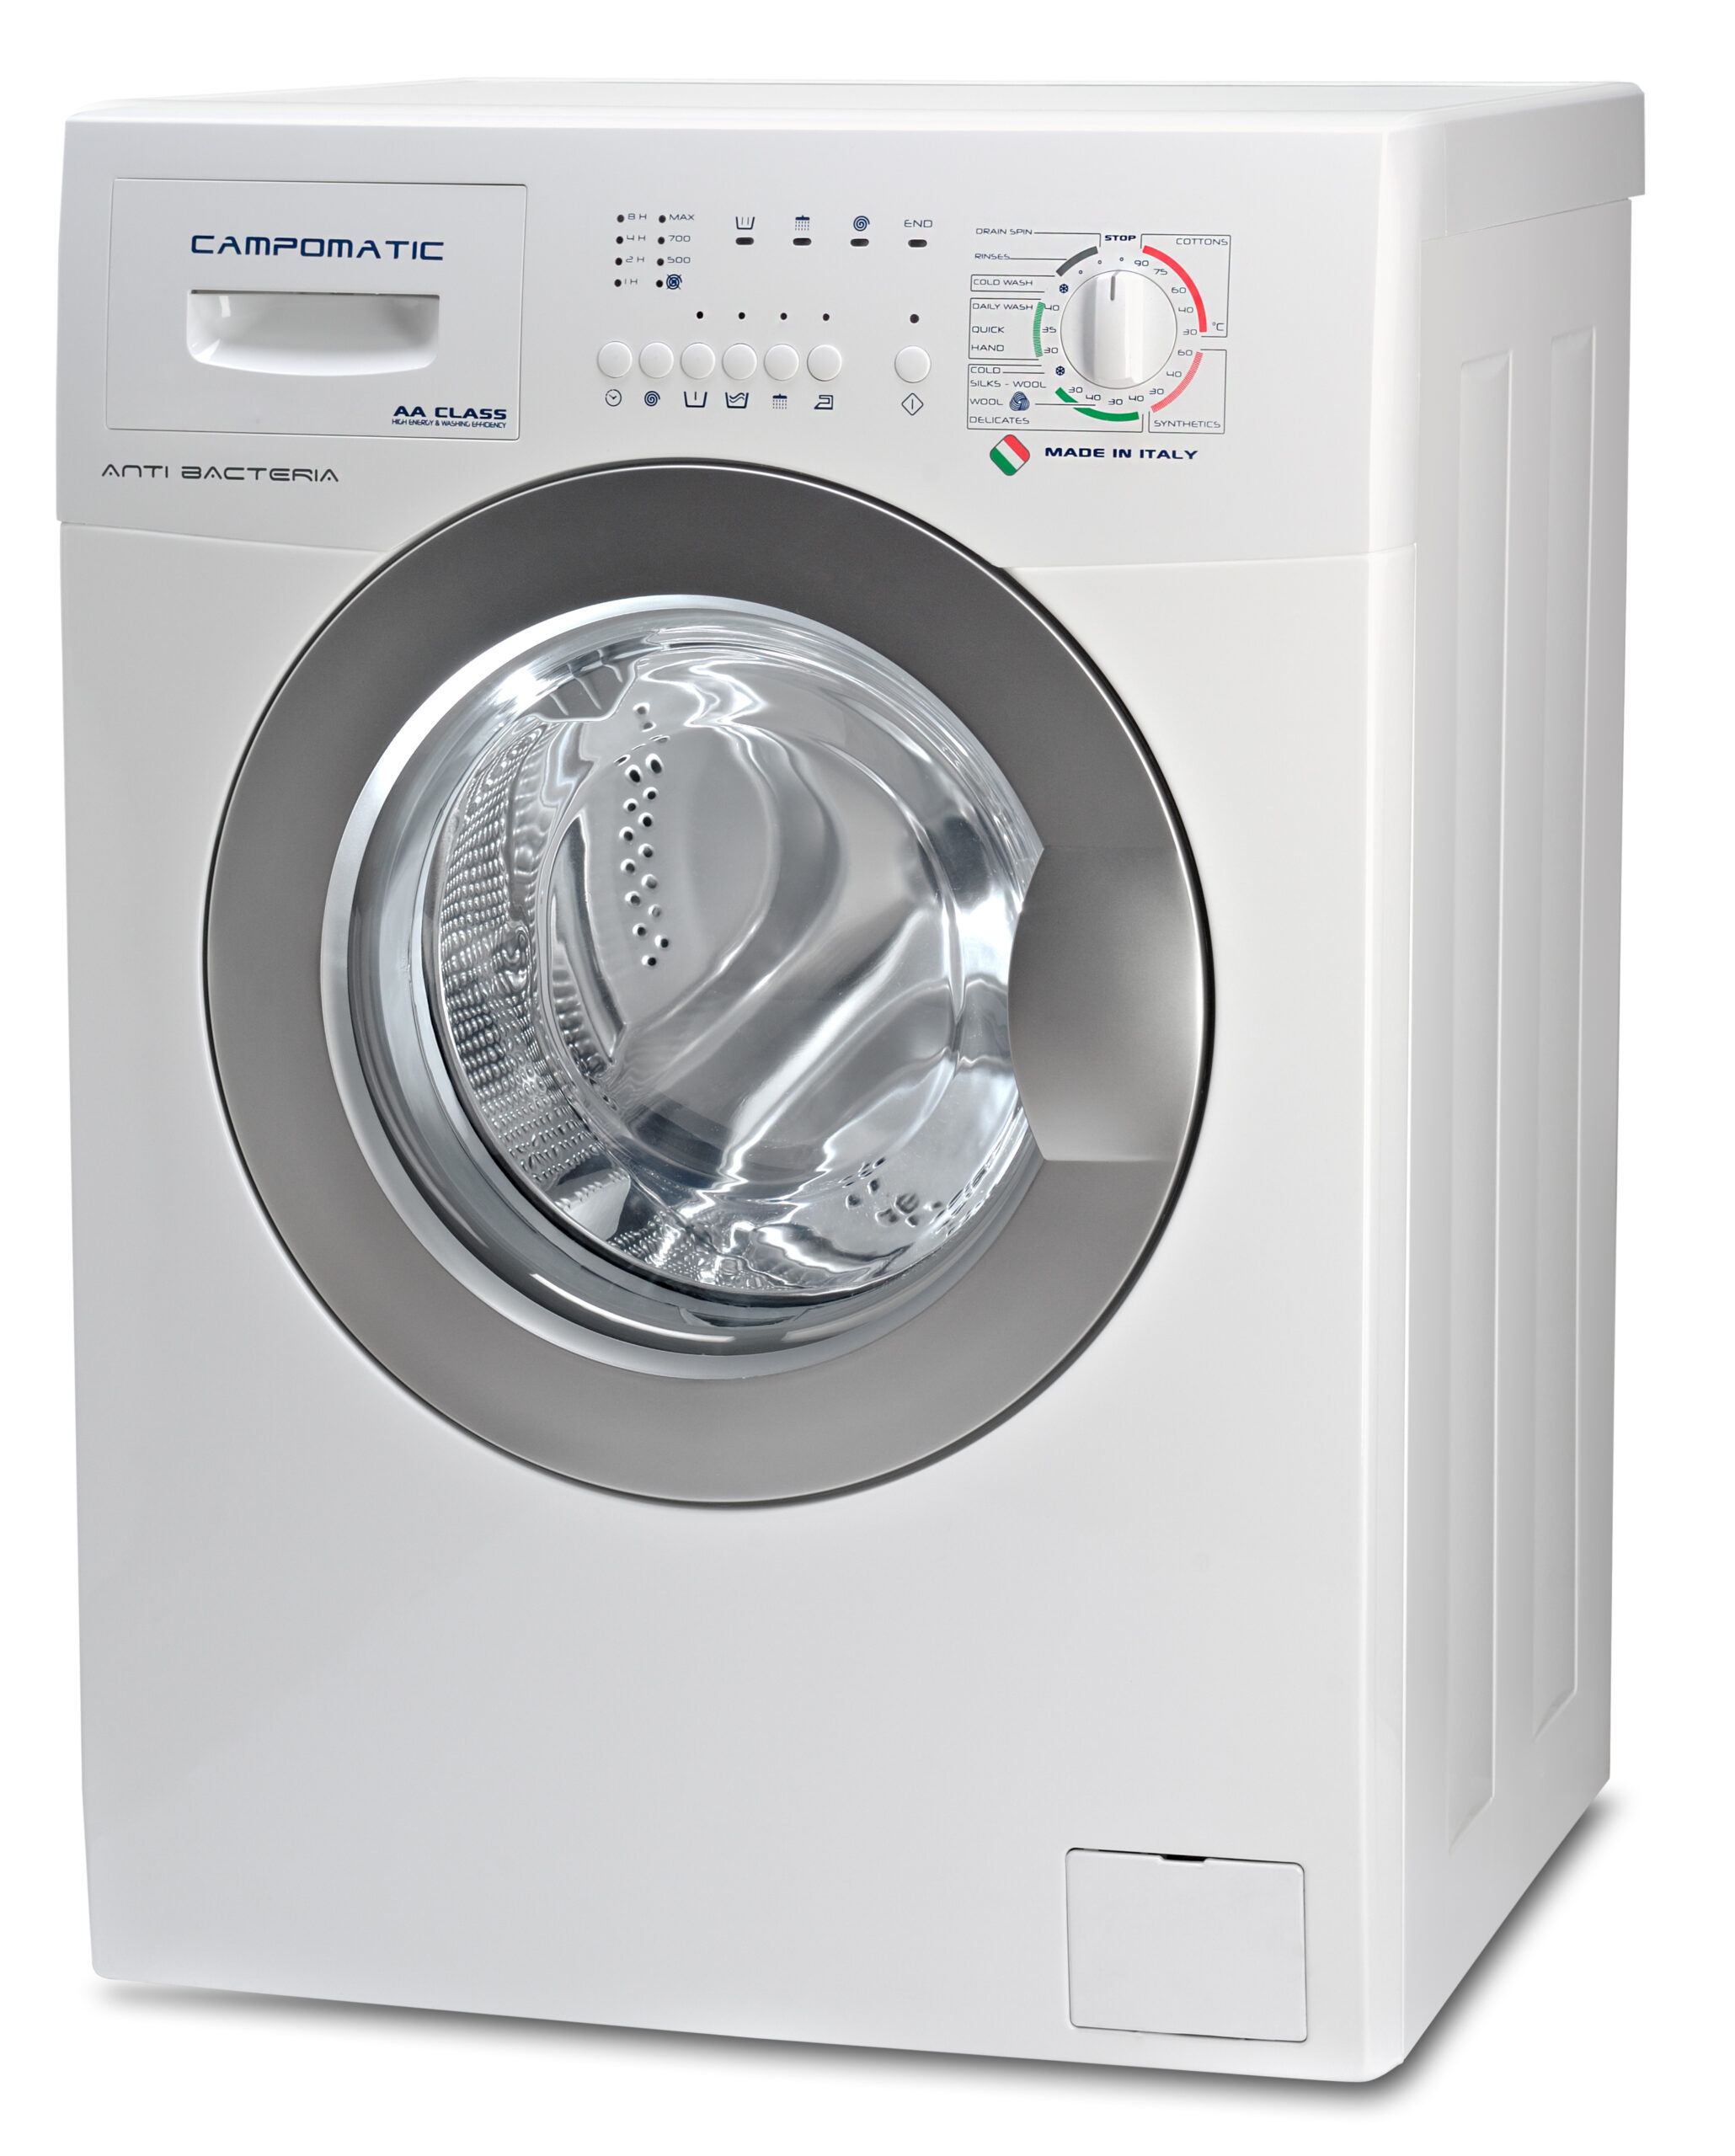 Campomatic Washer 11Kg Made in Italy WM111XL